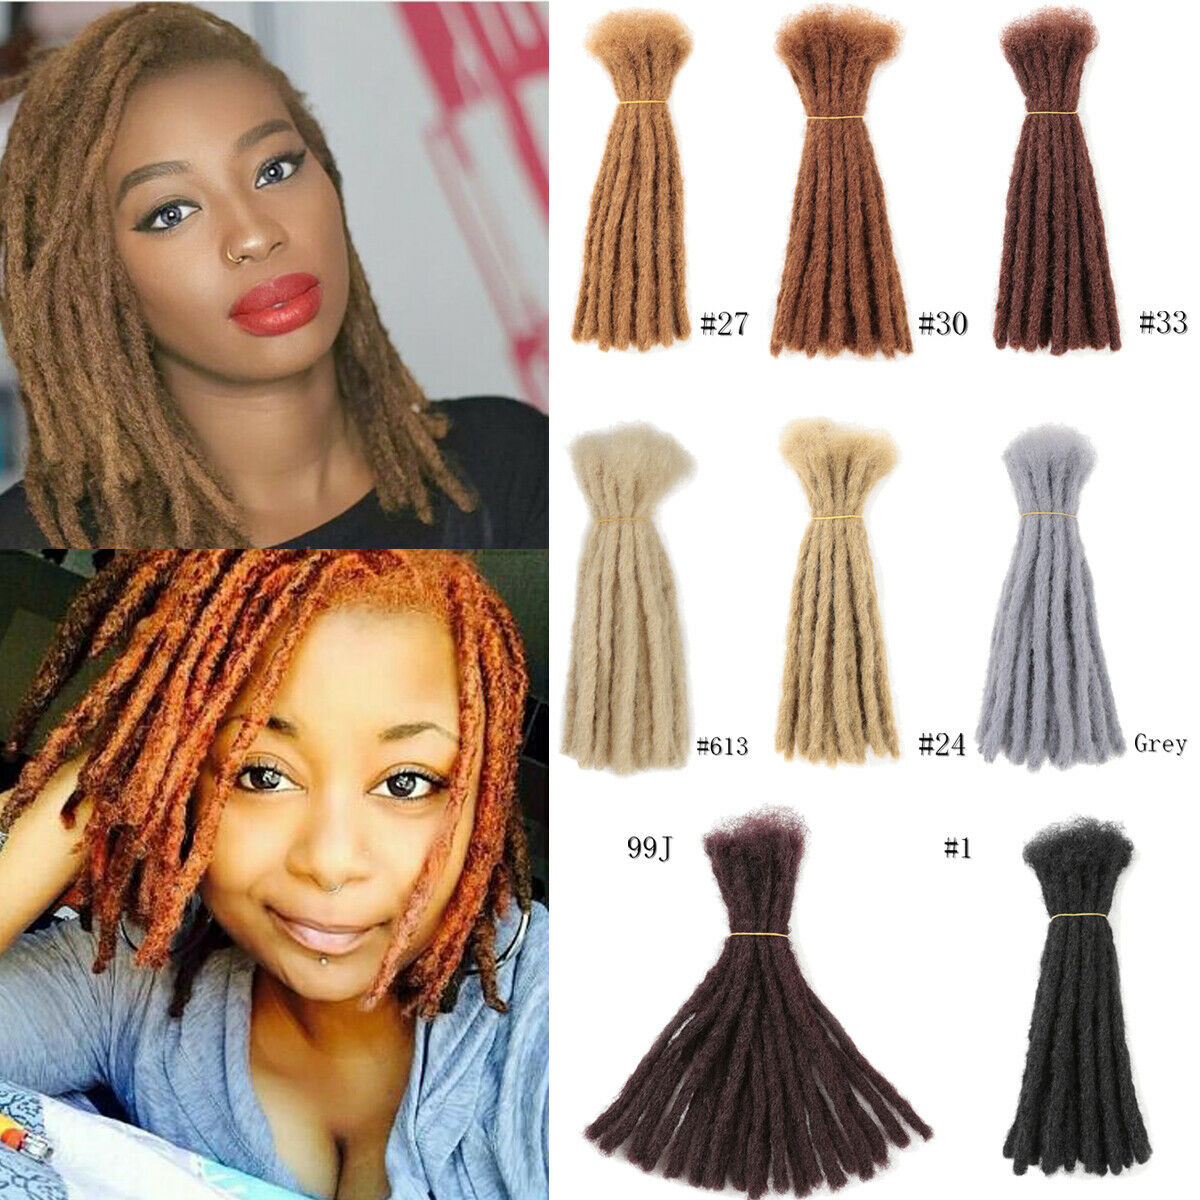 10 Inch 20 Dreads Short Crochet Dreadlocks Synthetic Blunt Ends Braided Locs Hair Extensions 12